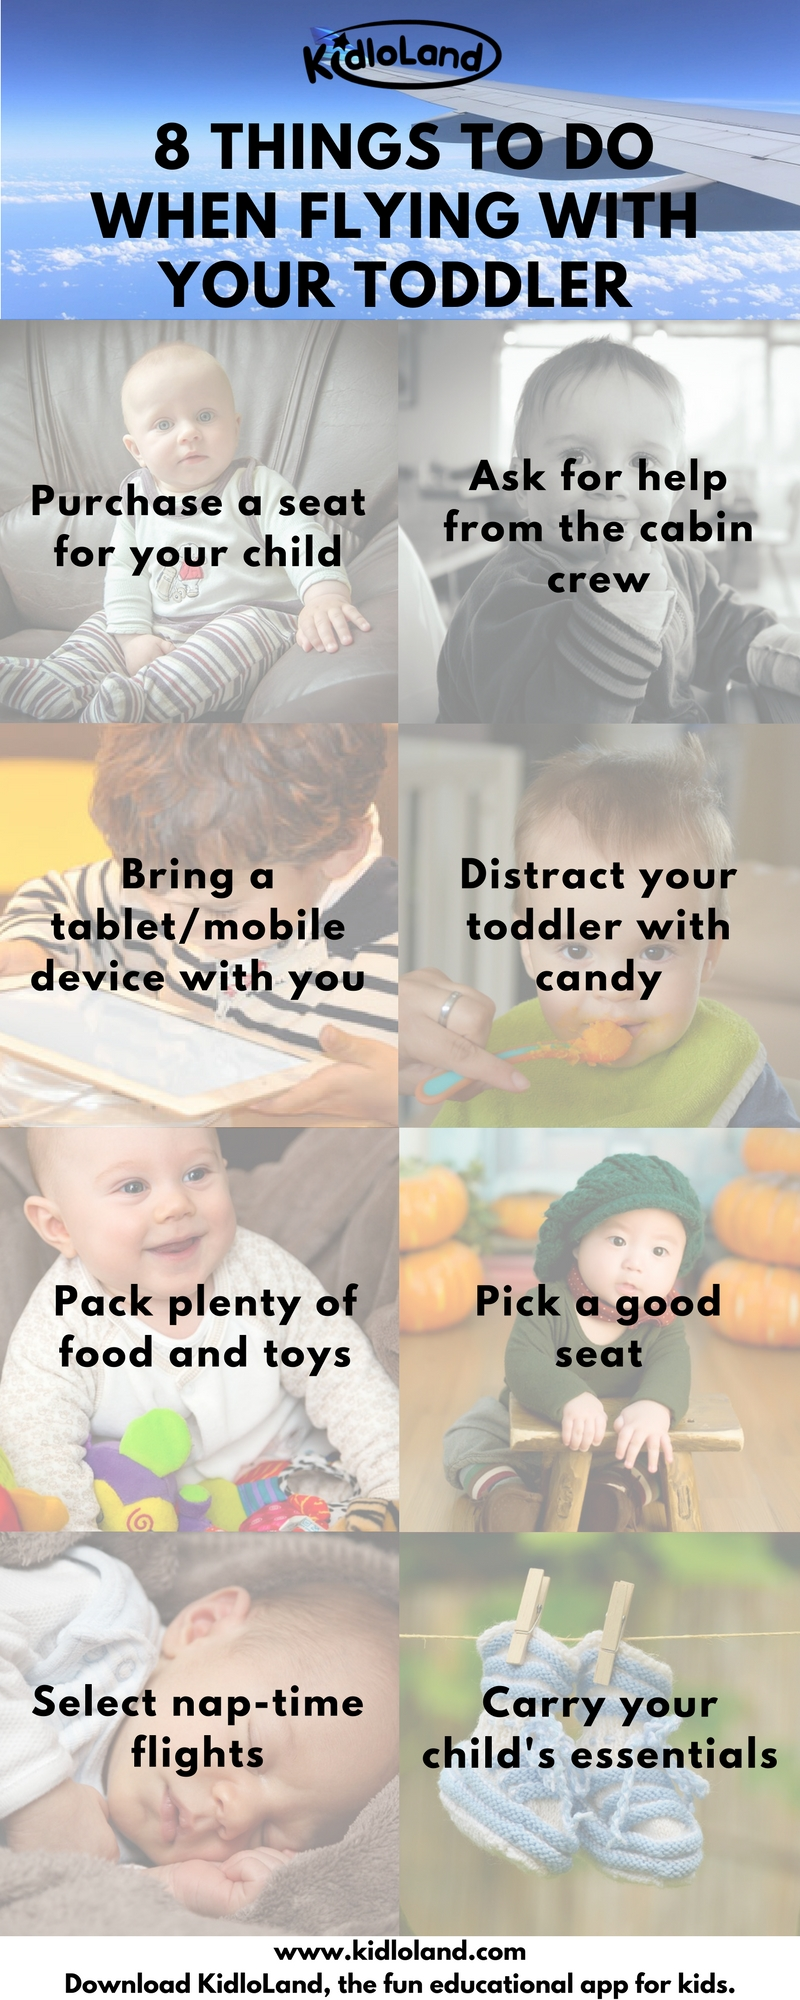 copy-of-things-to-do-when-flying-with-your-toddler